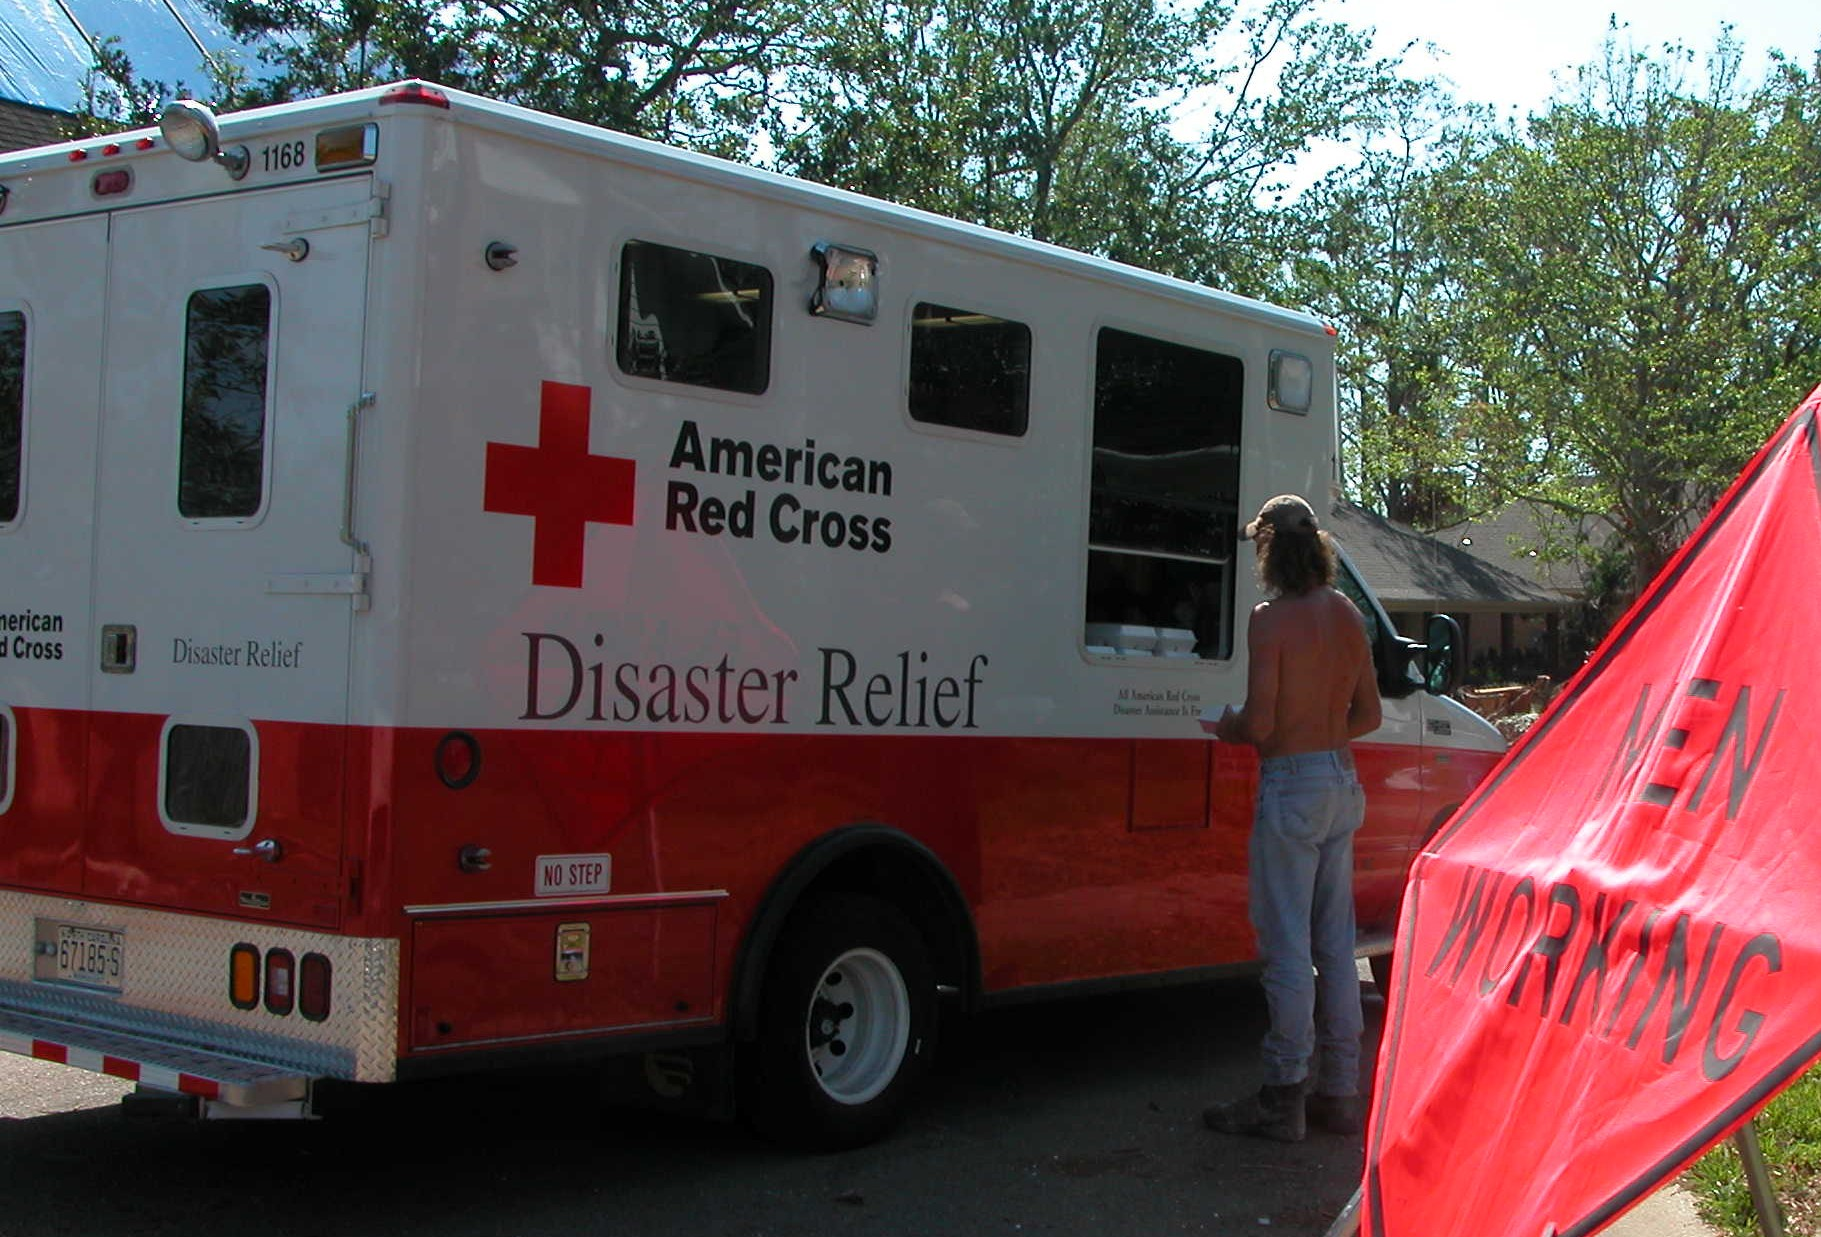 11. A resident of Waveland, Mississippi accepts a boxed meal from the American Red Cross four weeks after Hurricane Katrina decimated his community.